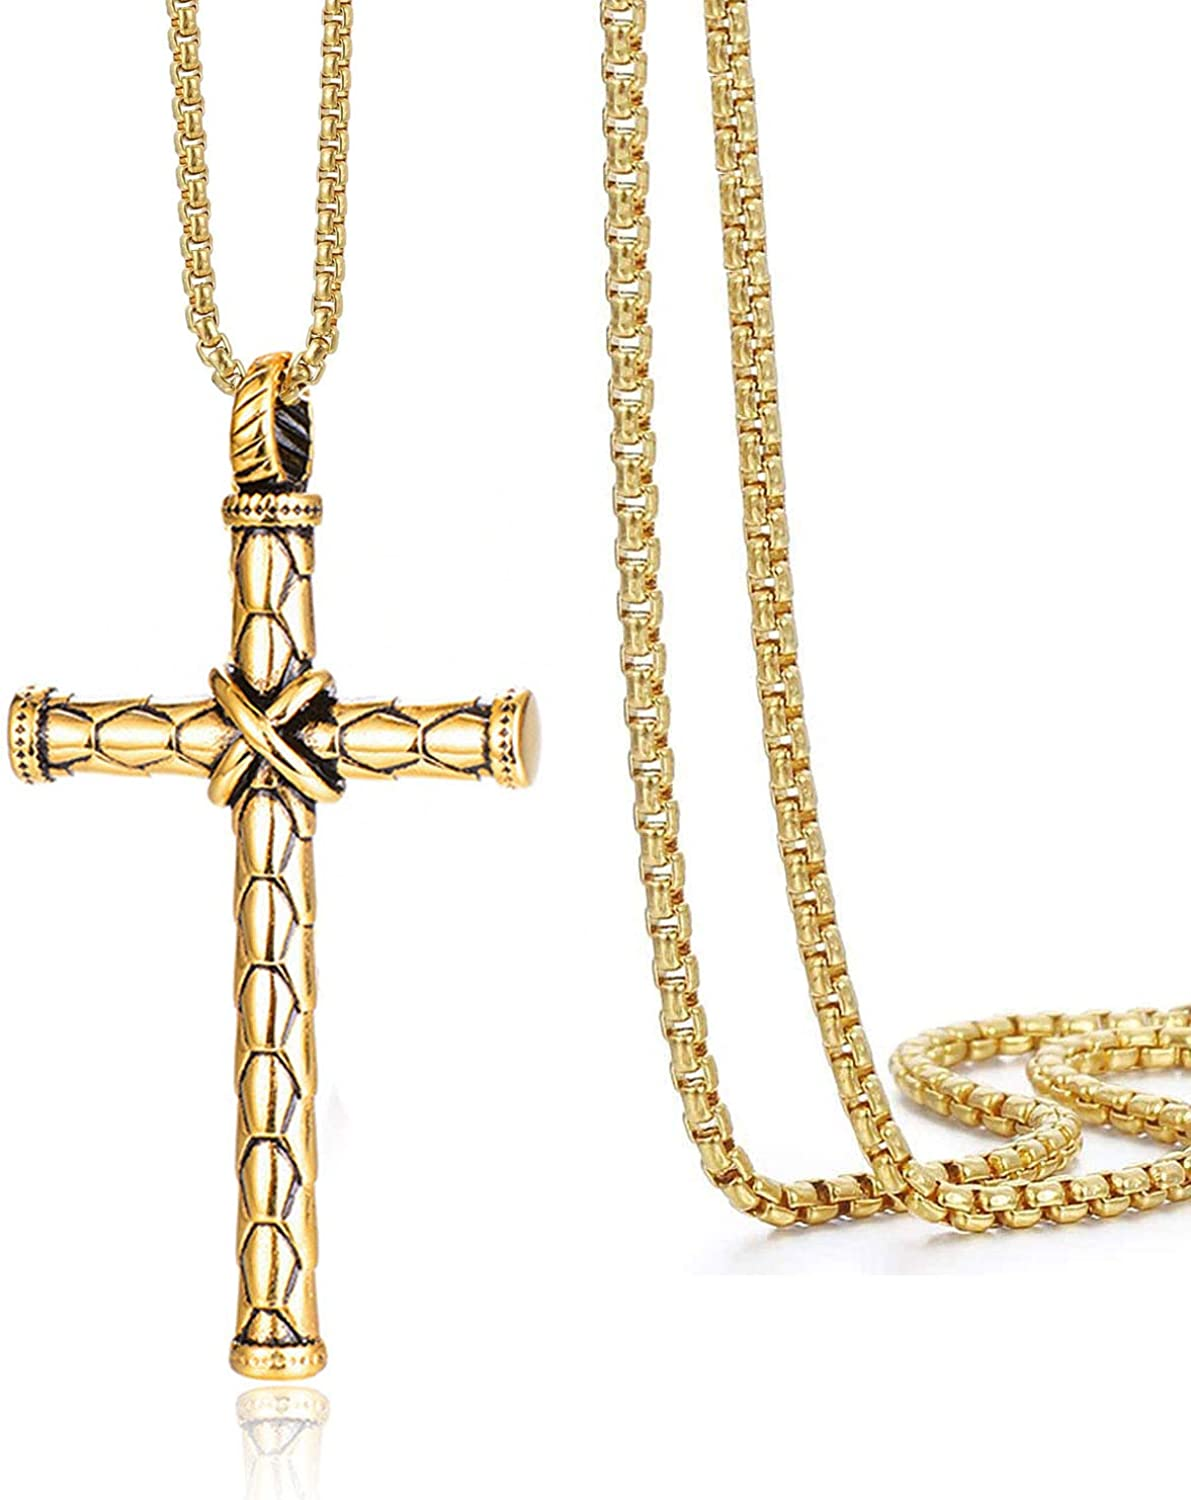 Zimojie Plain Faith Cross Pendant Necklace for Men,Stainless Steel Cross Pendant Necklaces Chain 24 Inches Box Chain,Gift for Mom Dad